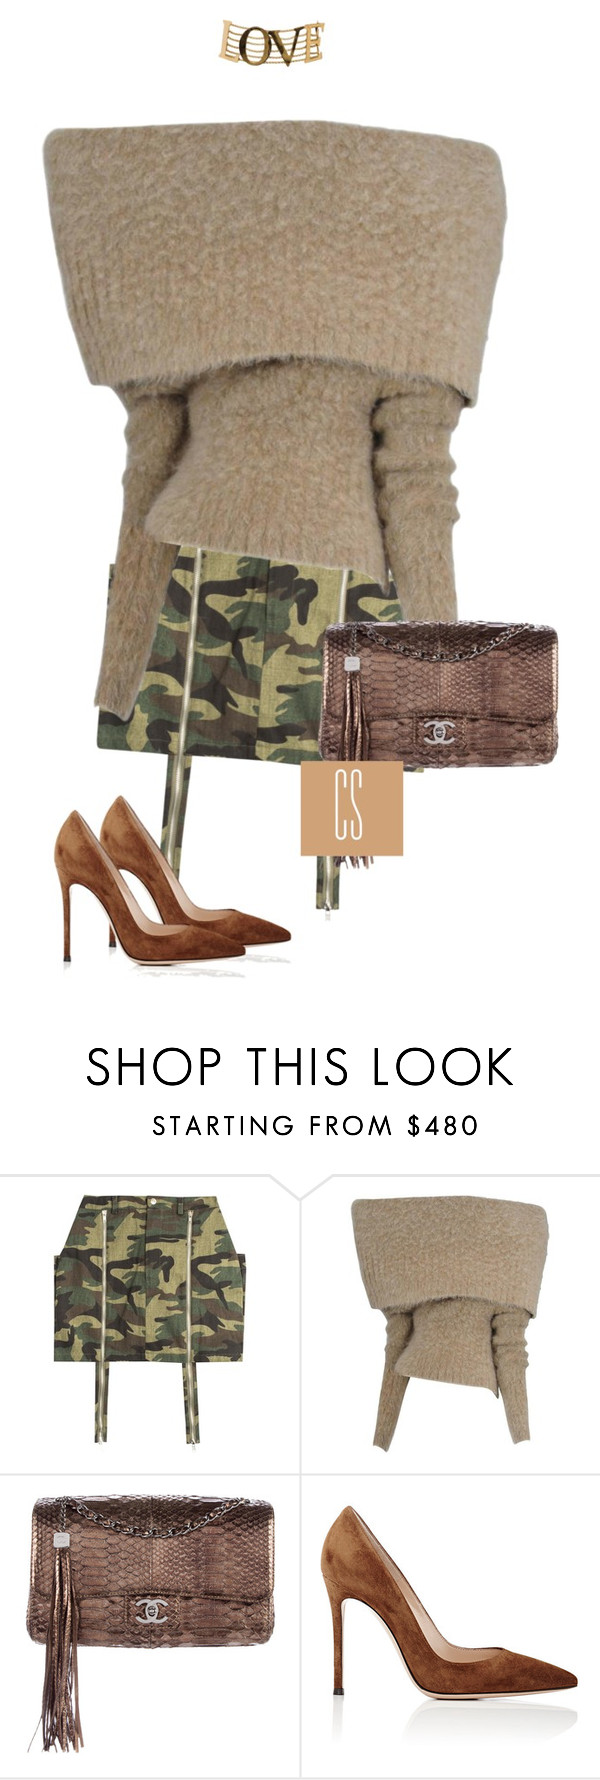 """""""Untitled #1127"""" by vladacatalleyag ❤ liked on Polyvore featuring Maison Margiela, Chanel, Gianvito Rossi and Dolce&Gabbana"""